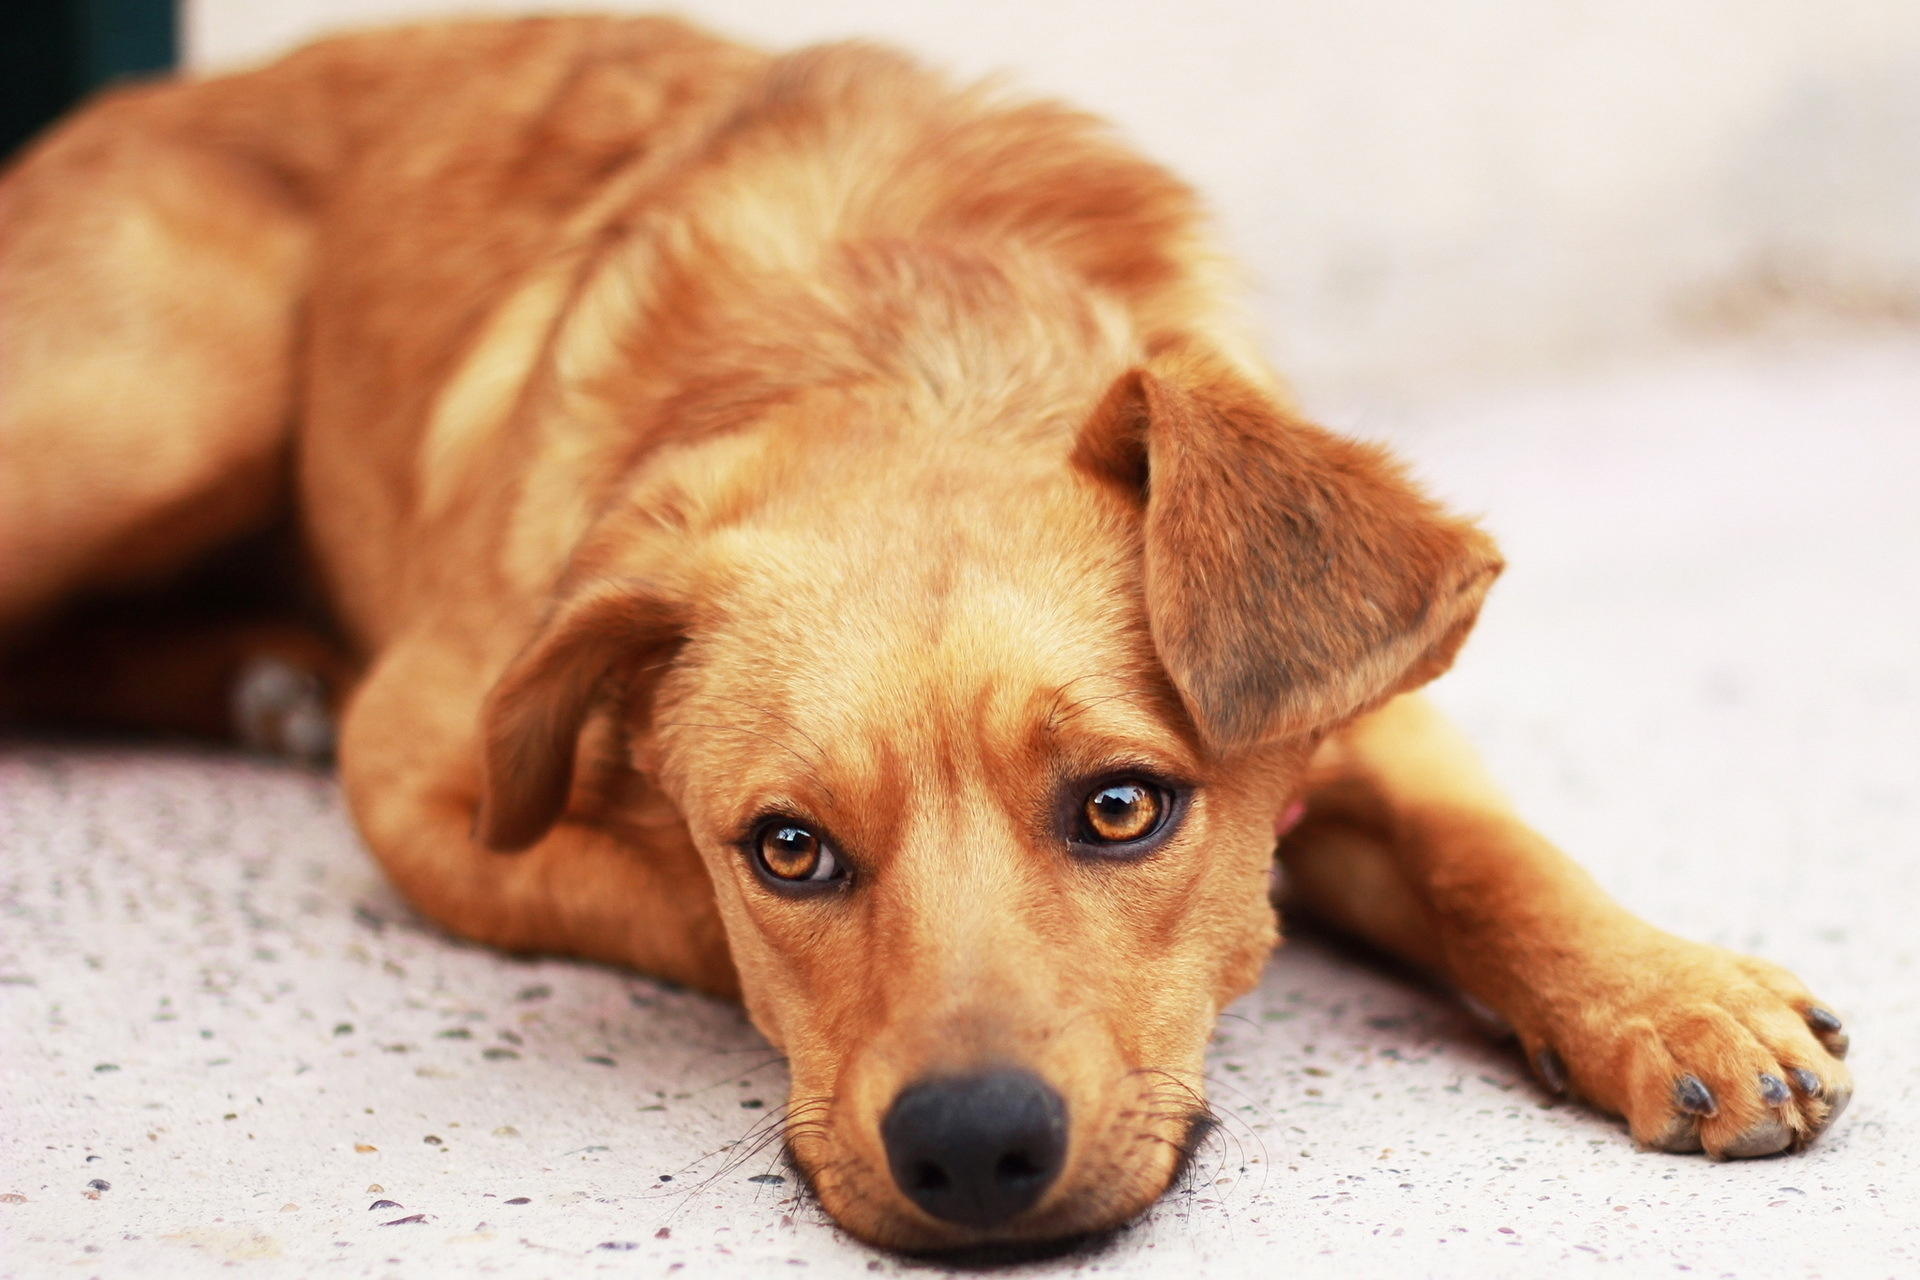 120426 download wallpaper Animals, Dog, Puppy, Muzzle, To Lie Down, Lie, Sadness, Sorrow, Sight, Opinion screensavers and pictures for free